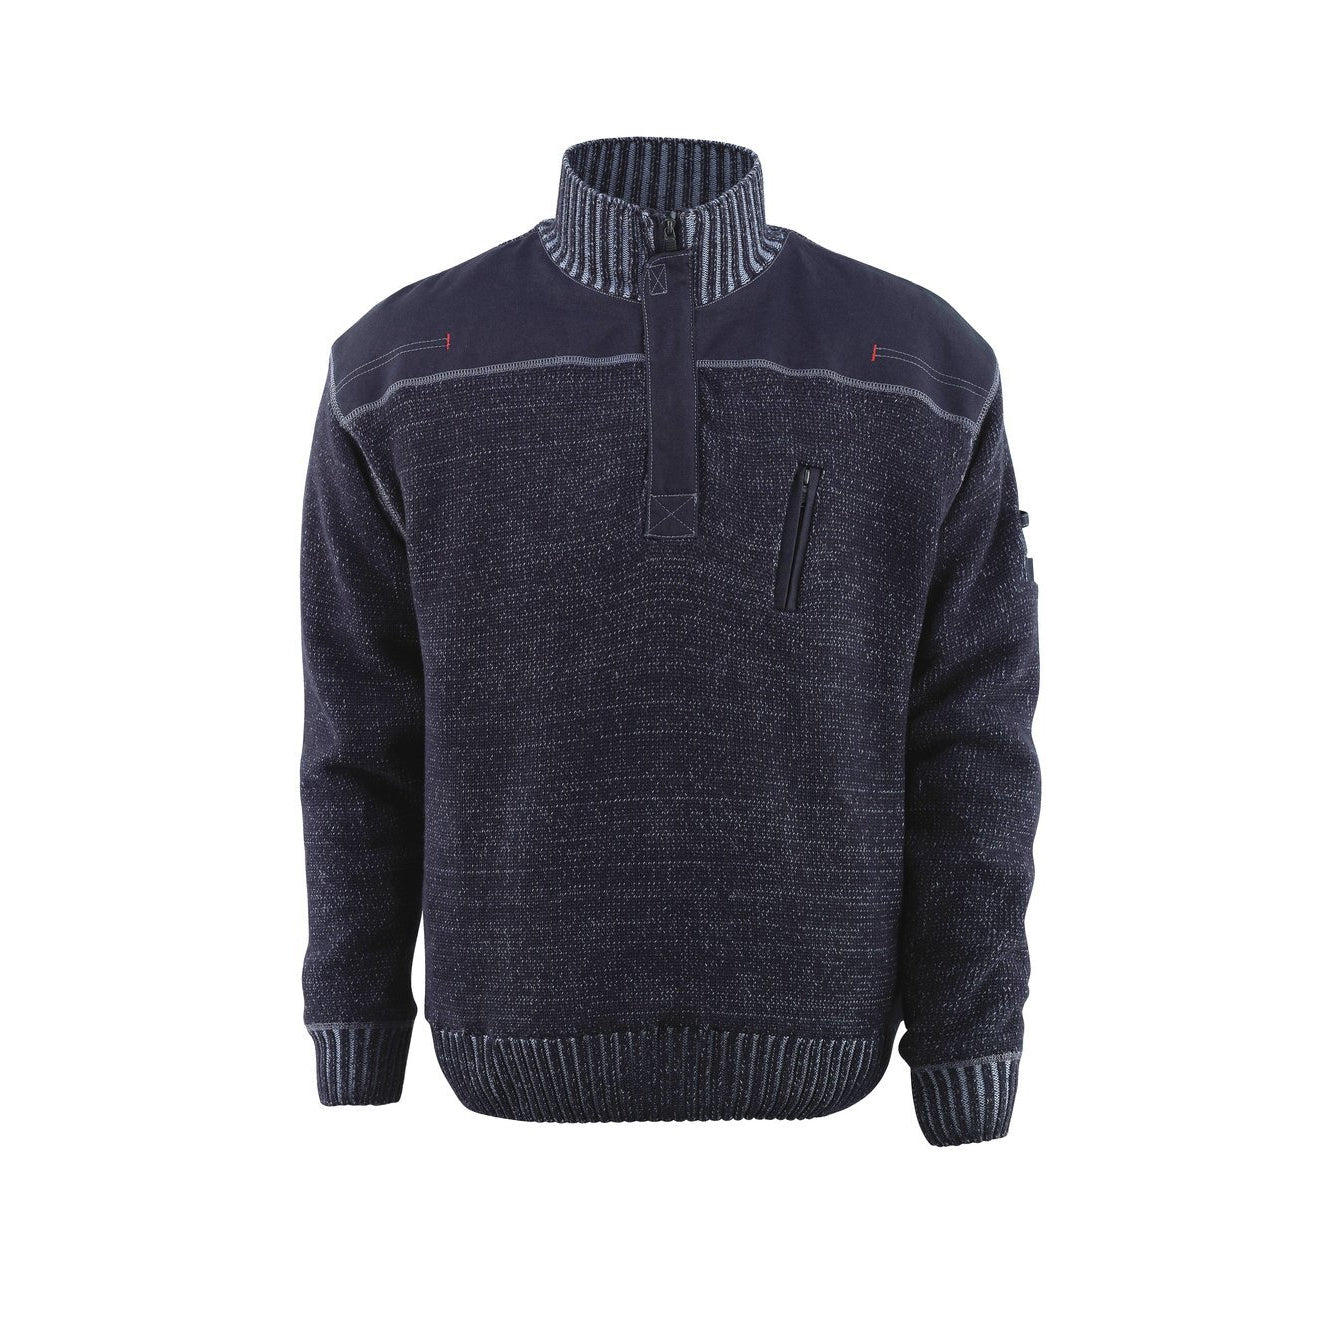 Mascot Naxos Frontline Knitted Jumper With Half Zip